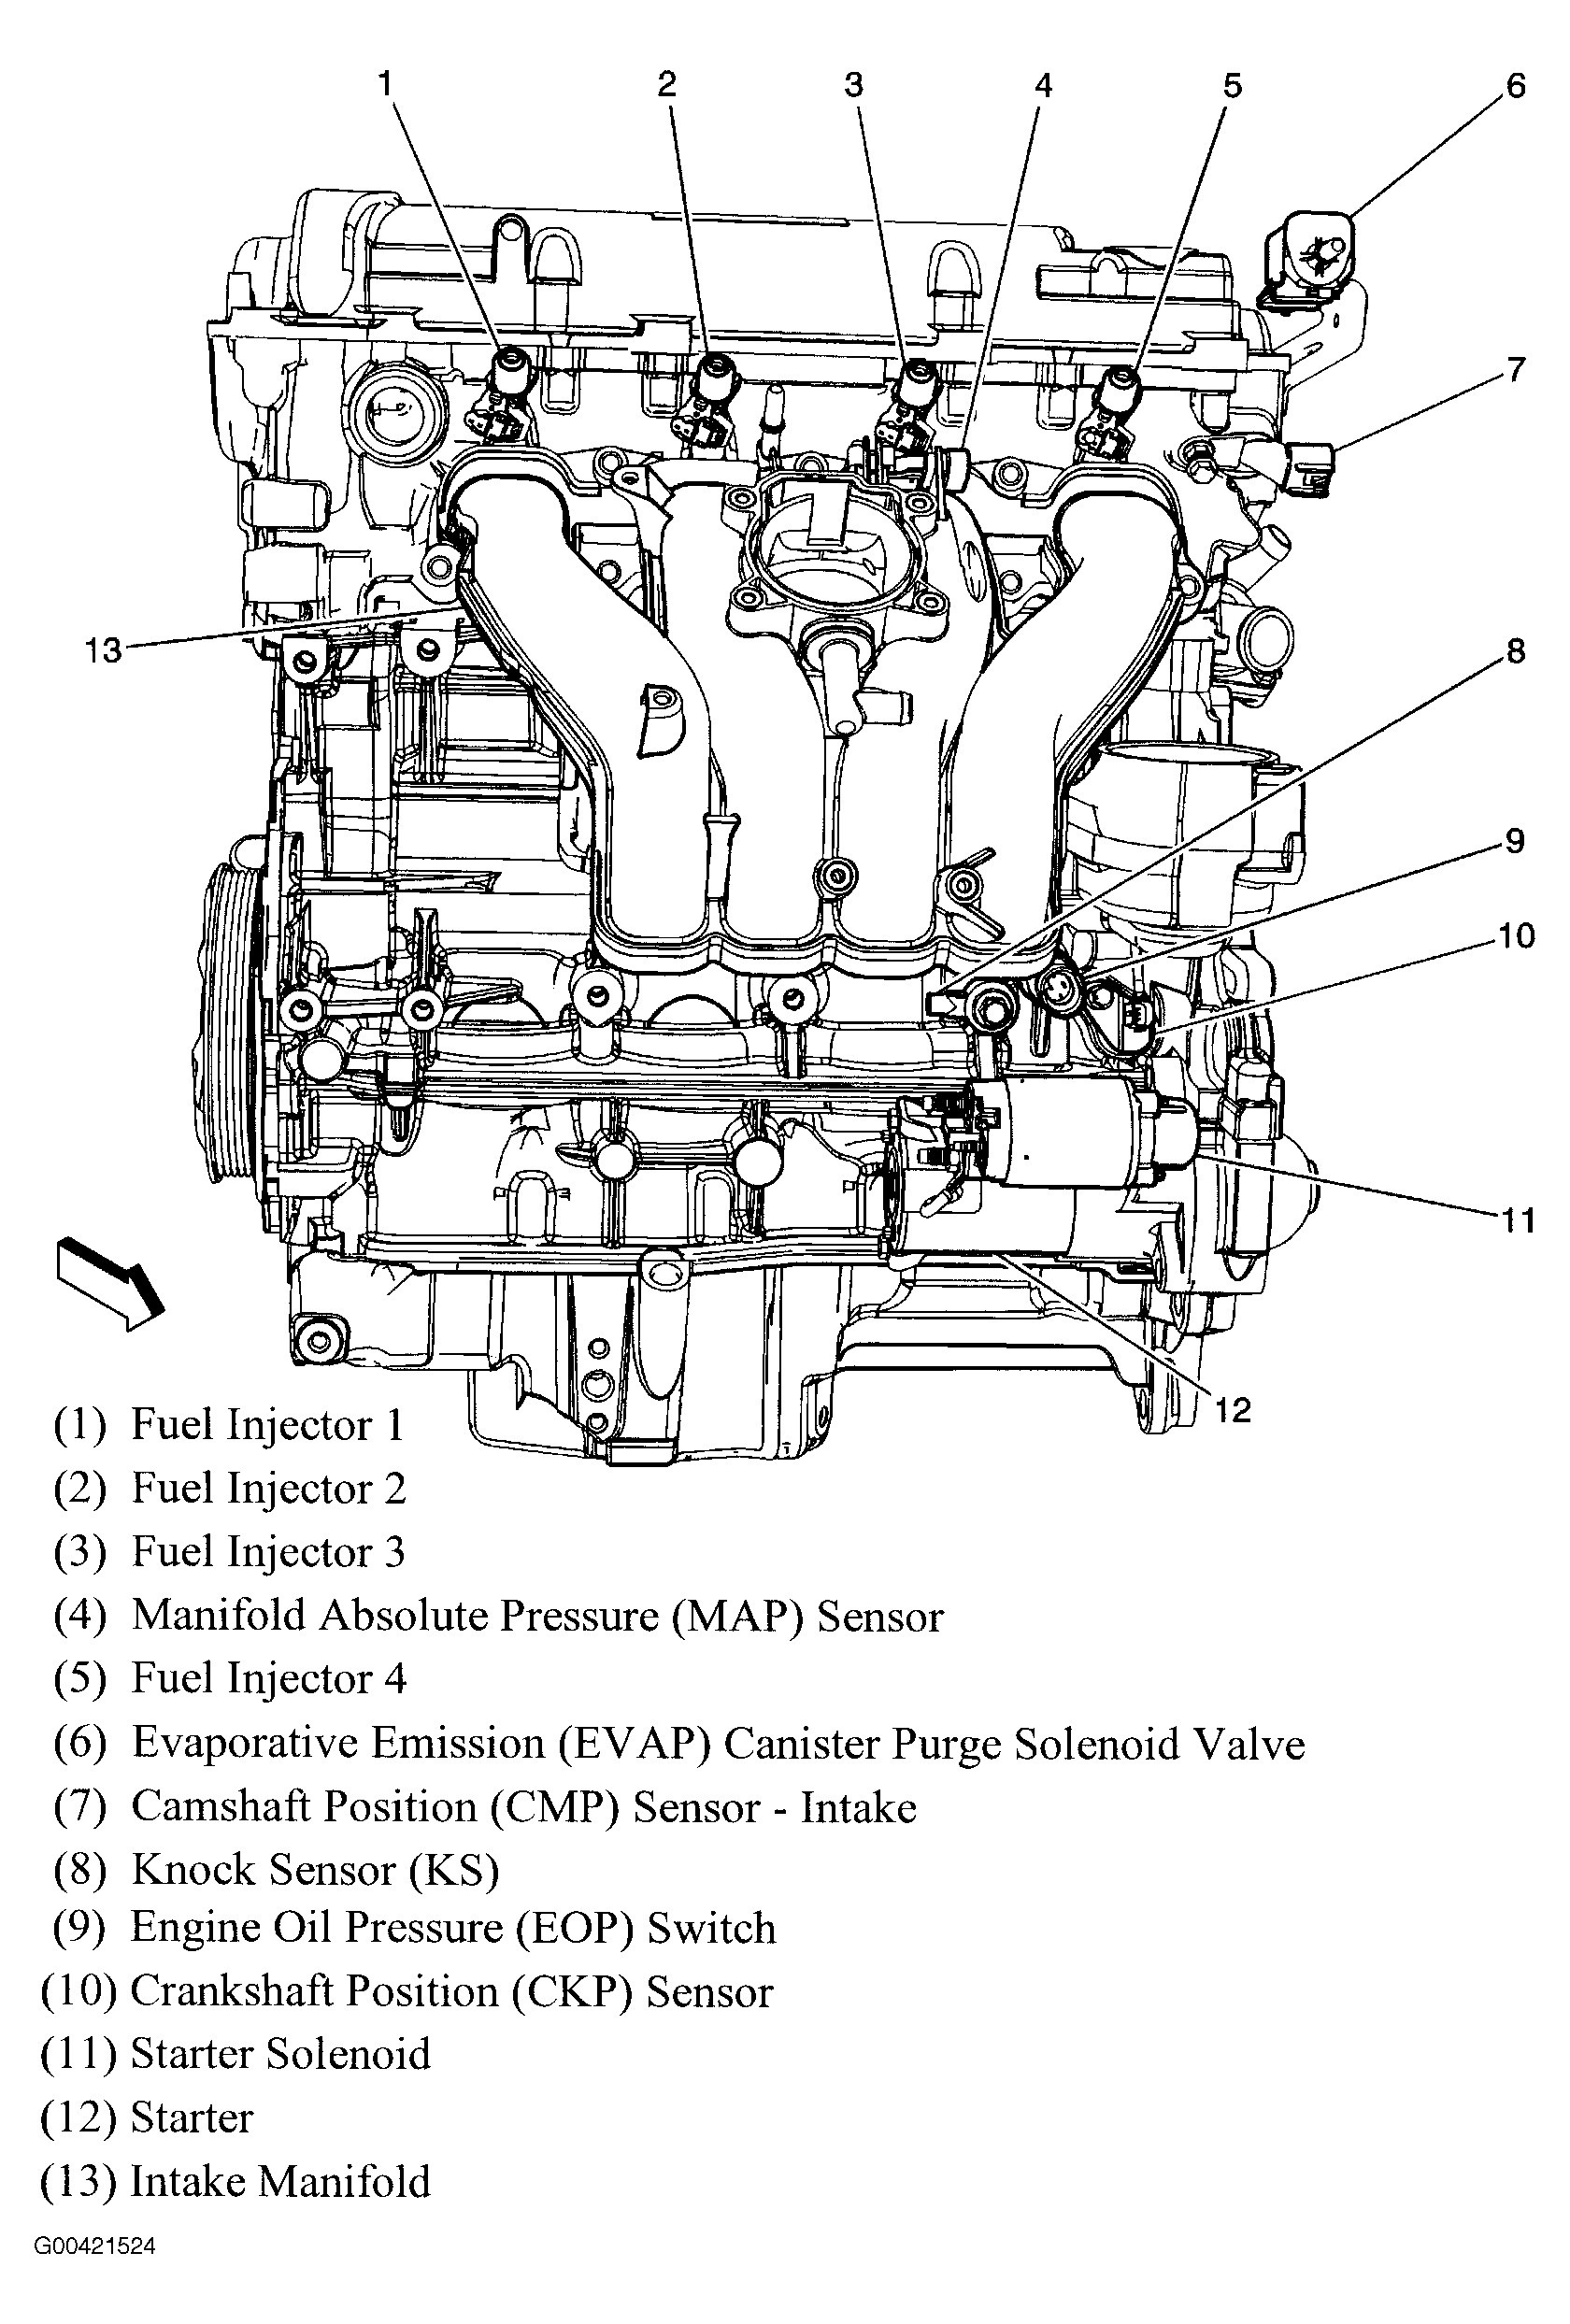 hight resolution of saturn ion engine diagram wiring diagram details saturn vue engine diagram saturn 2 2l engine diagram